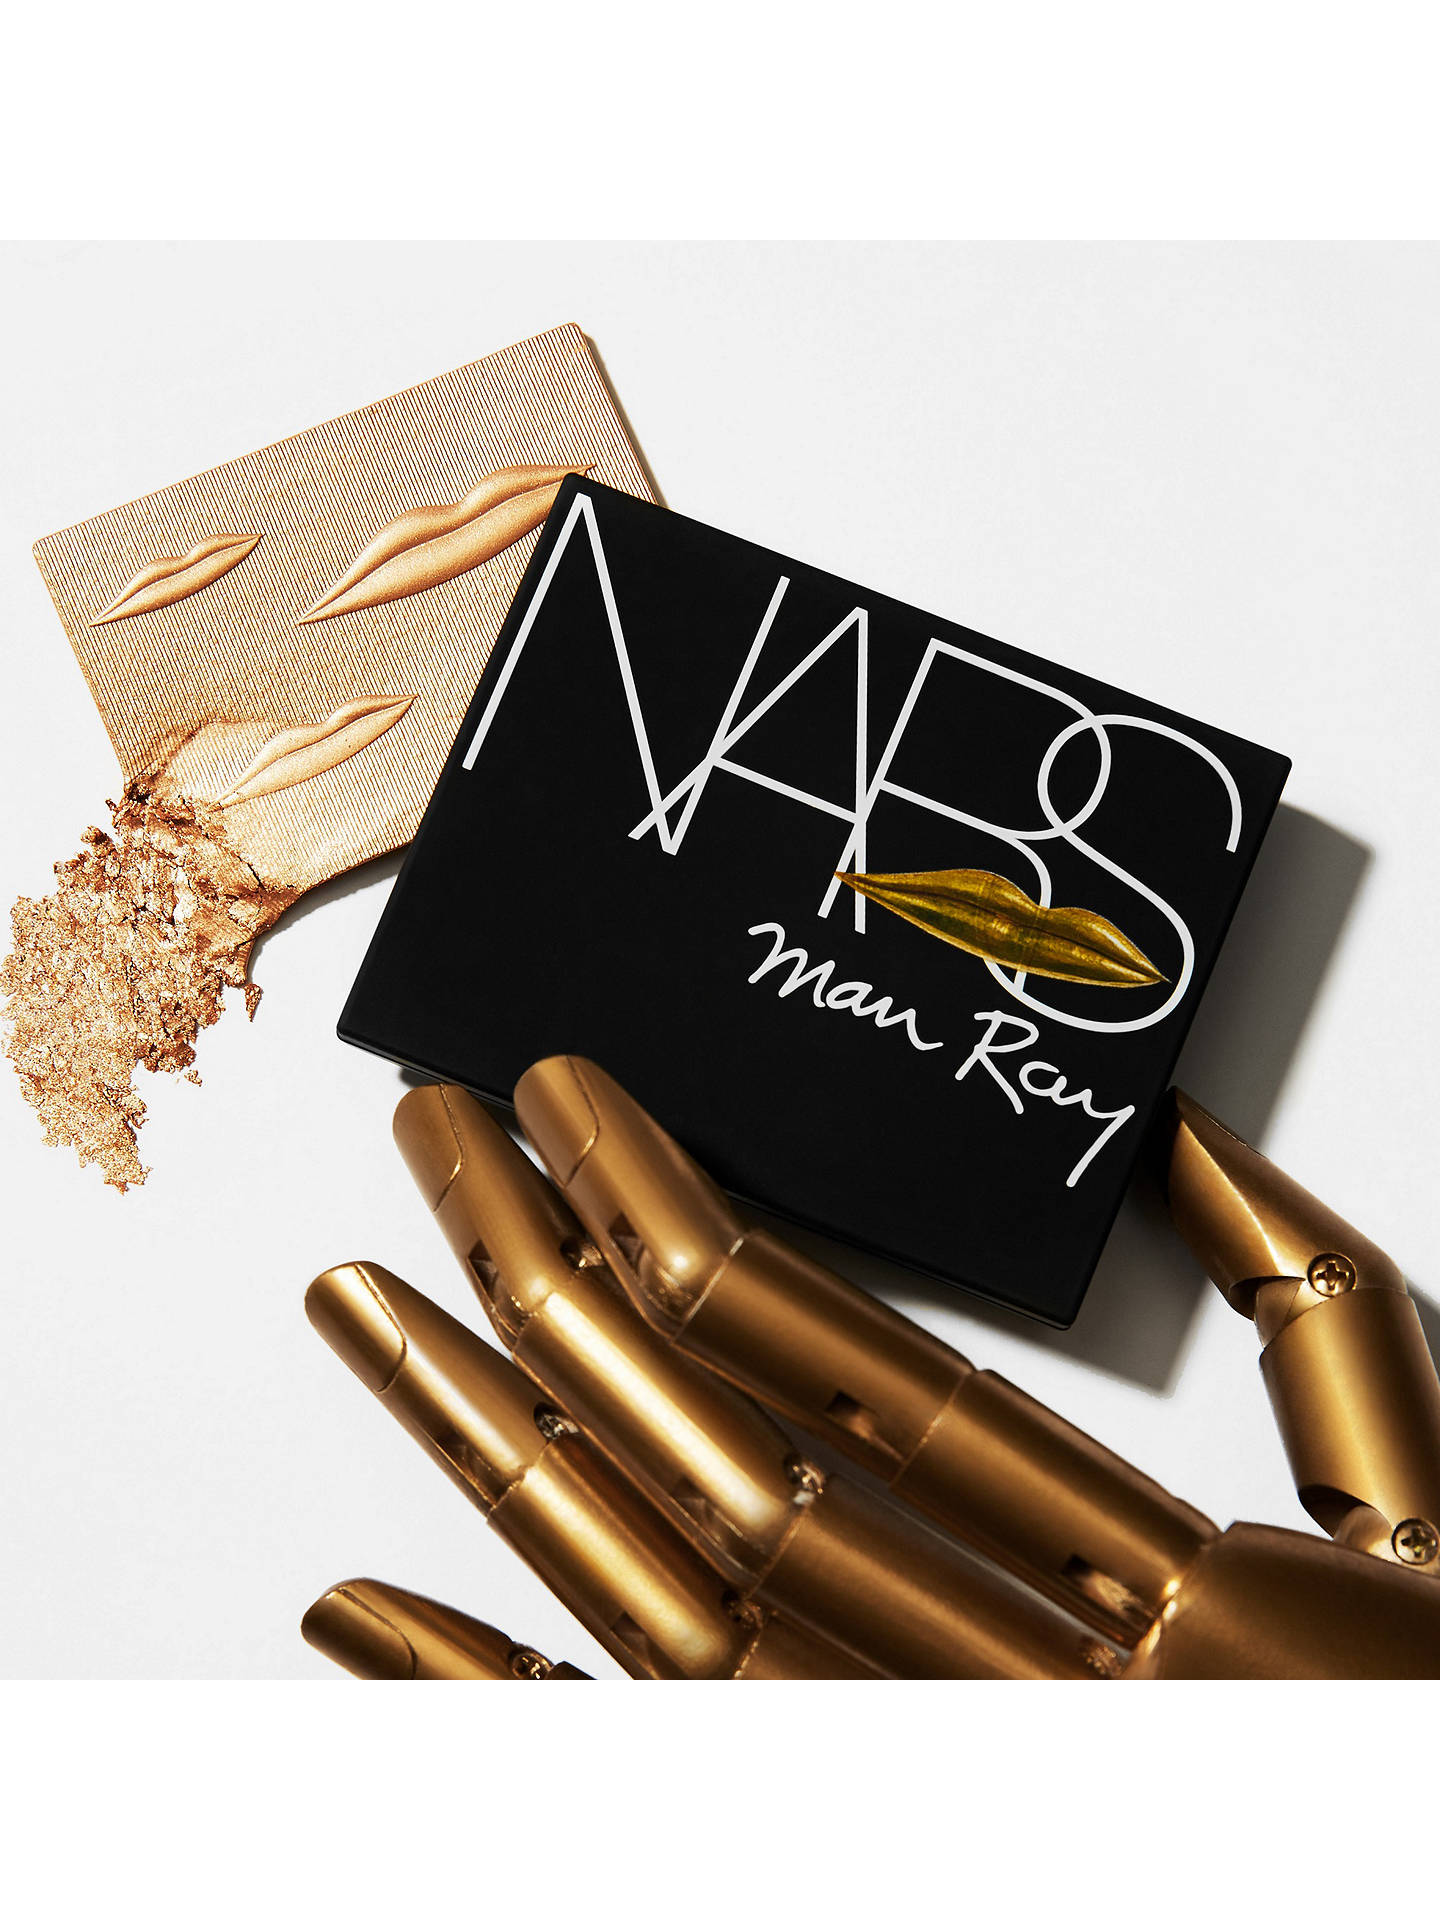 Buy NARS Man Ray Overexposed Glow Highlighter, Double Take Online at johnlewis.com